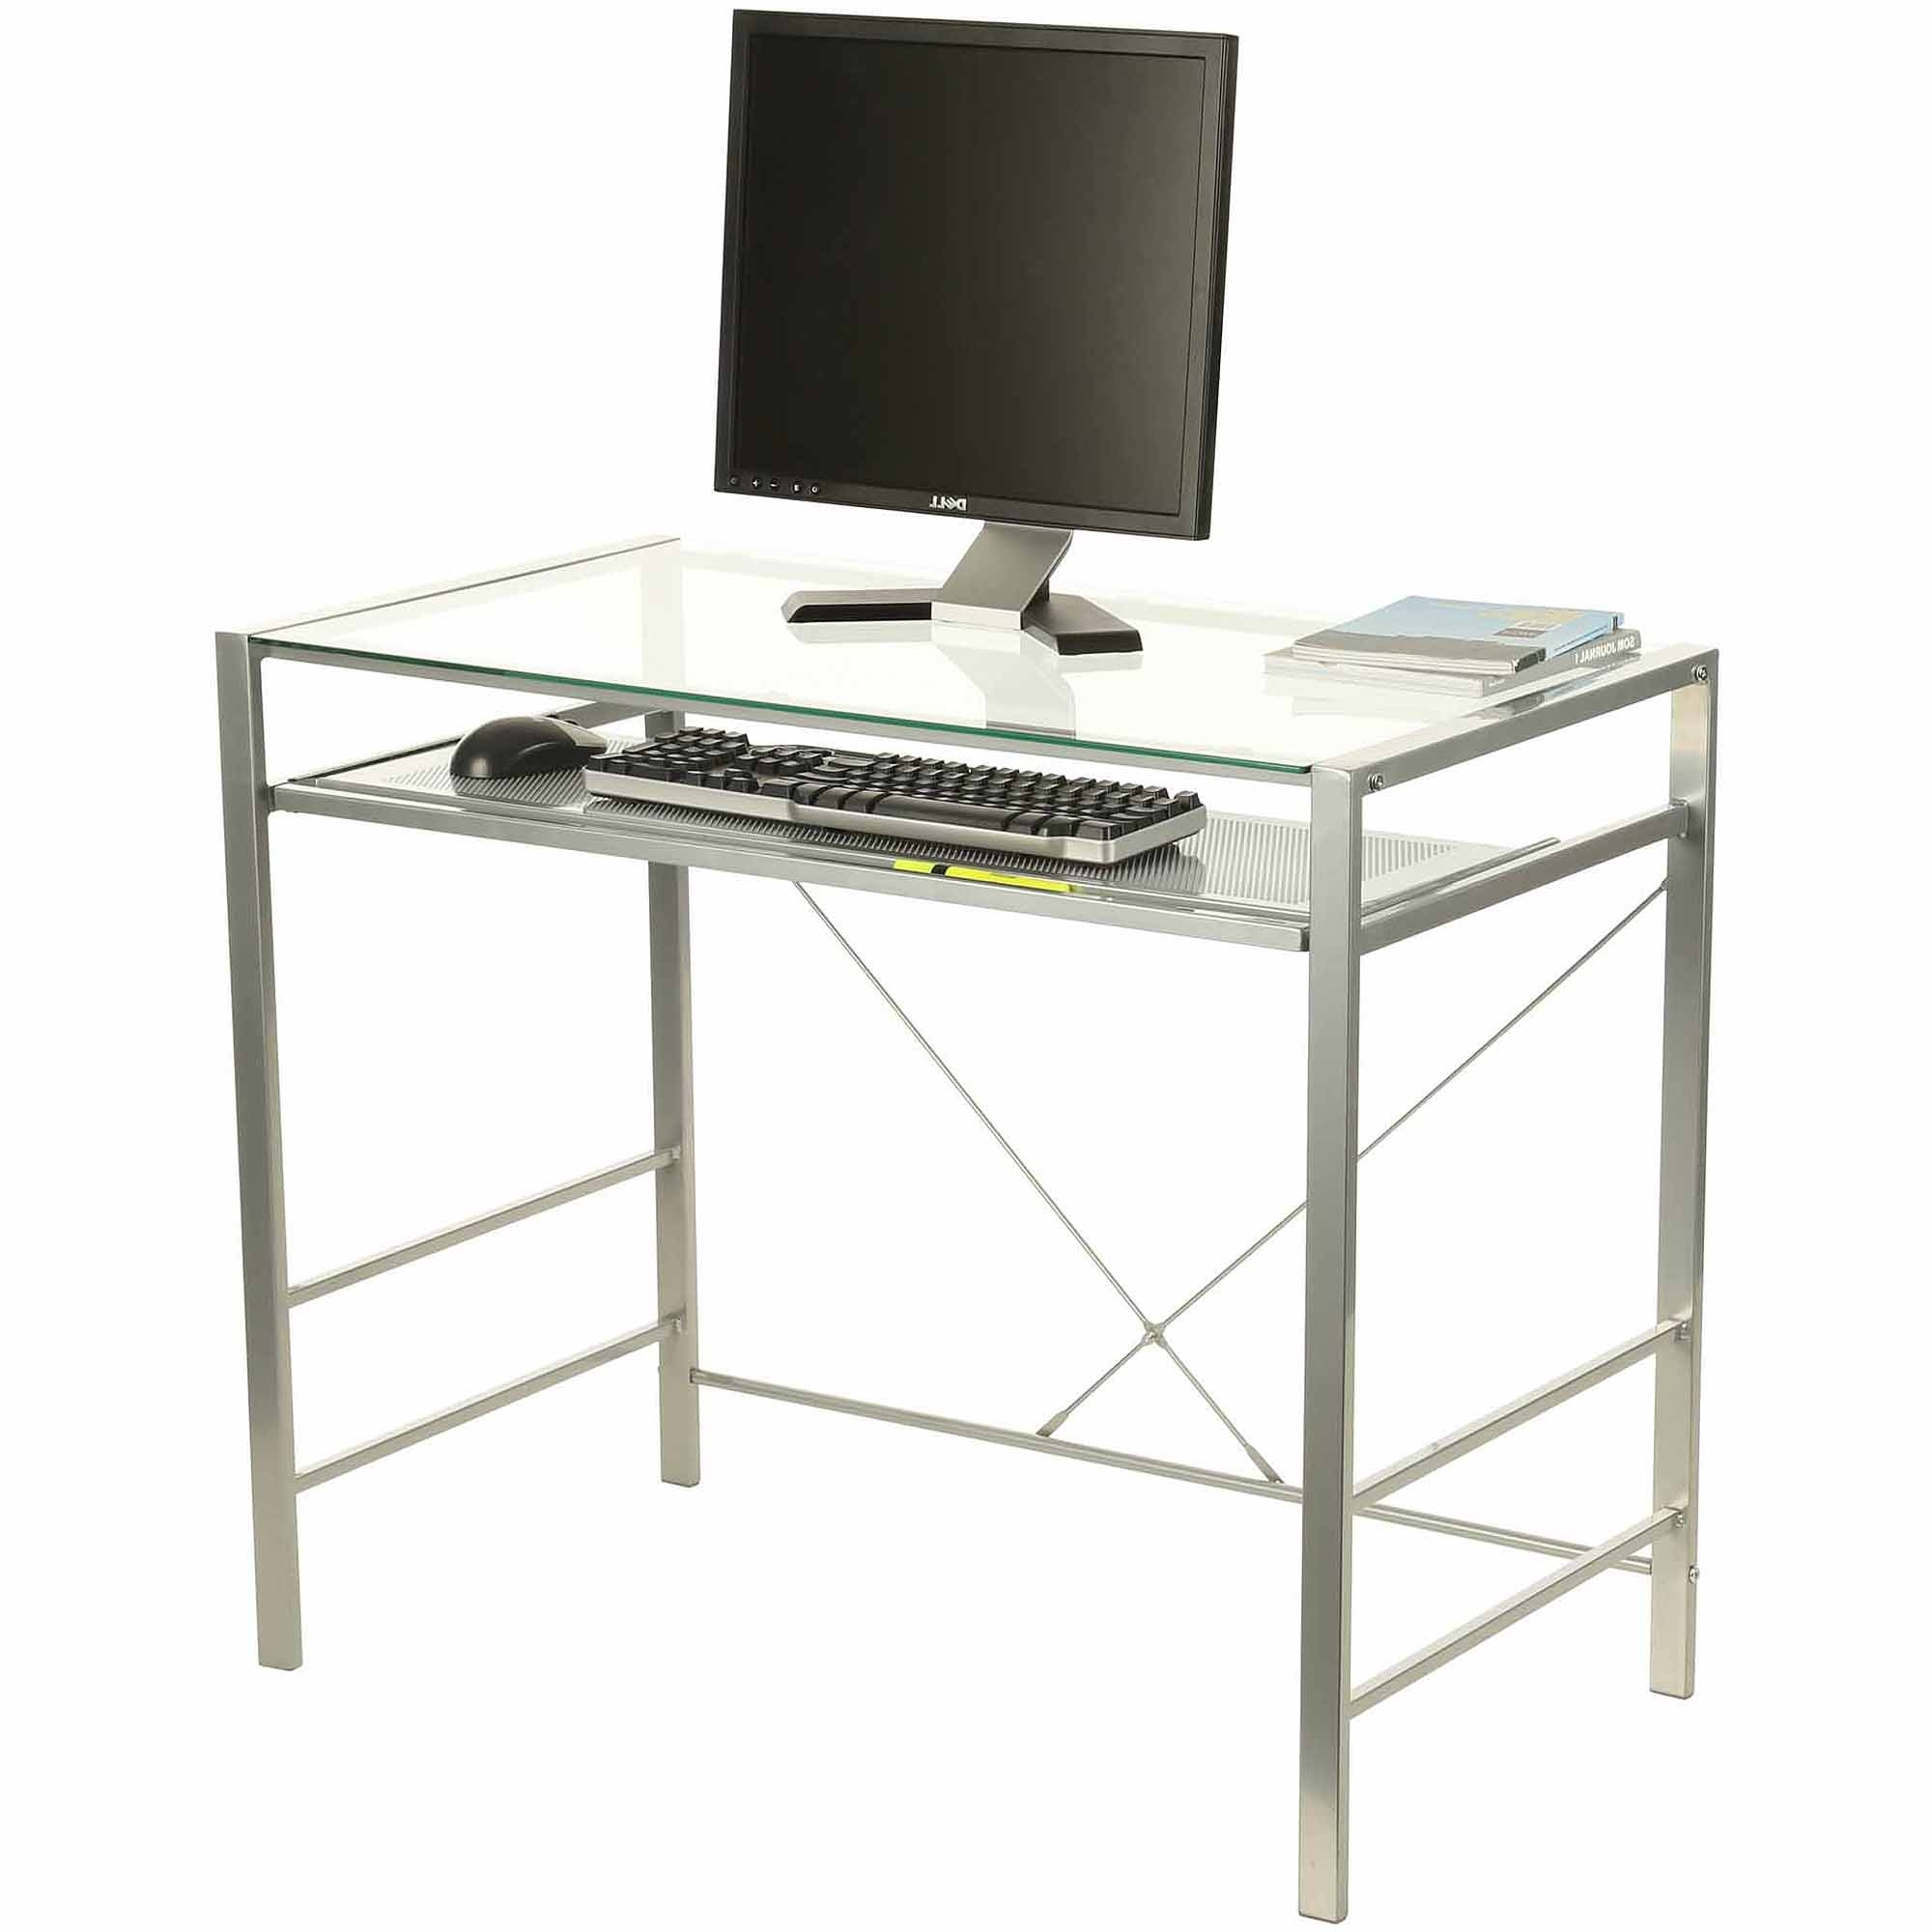 Capri Glass And Metal Desk, Silver – Walmart Inside Most Recent Glass And Metal Computer Desks (View 4 of 20)